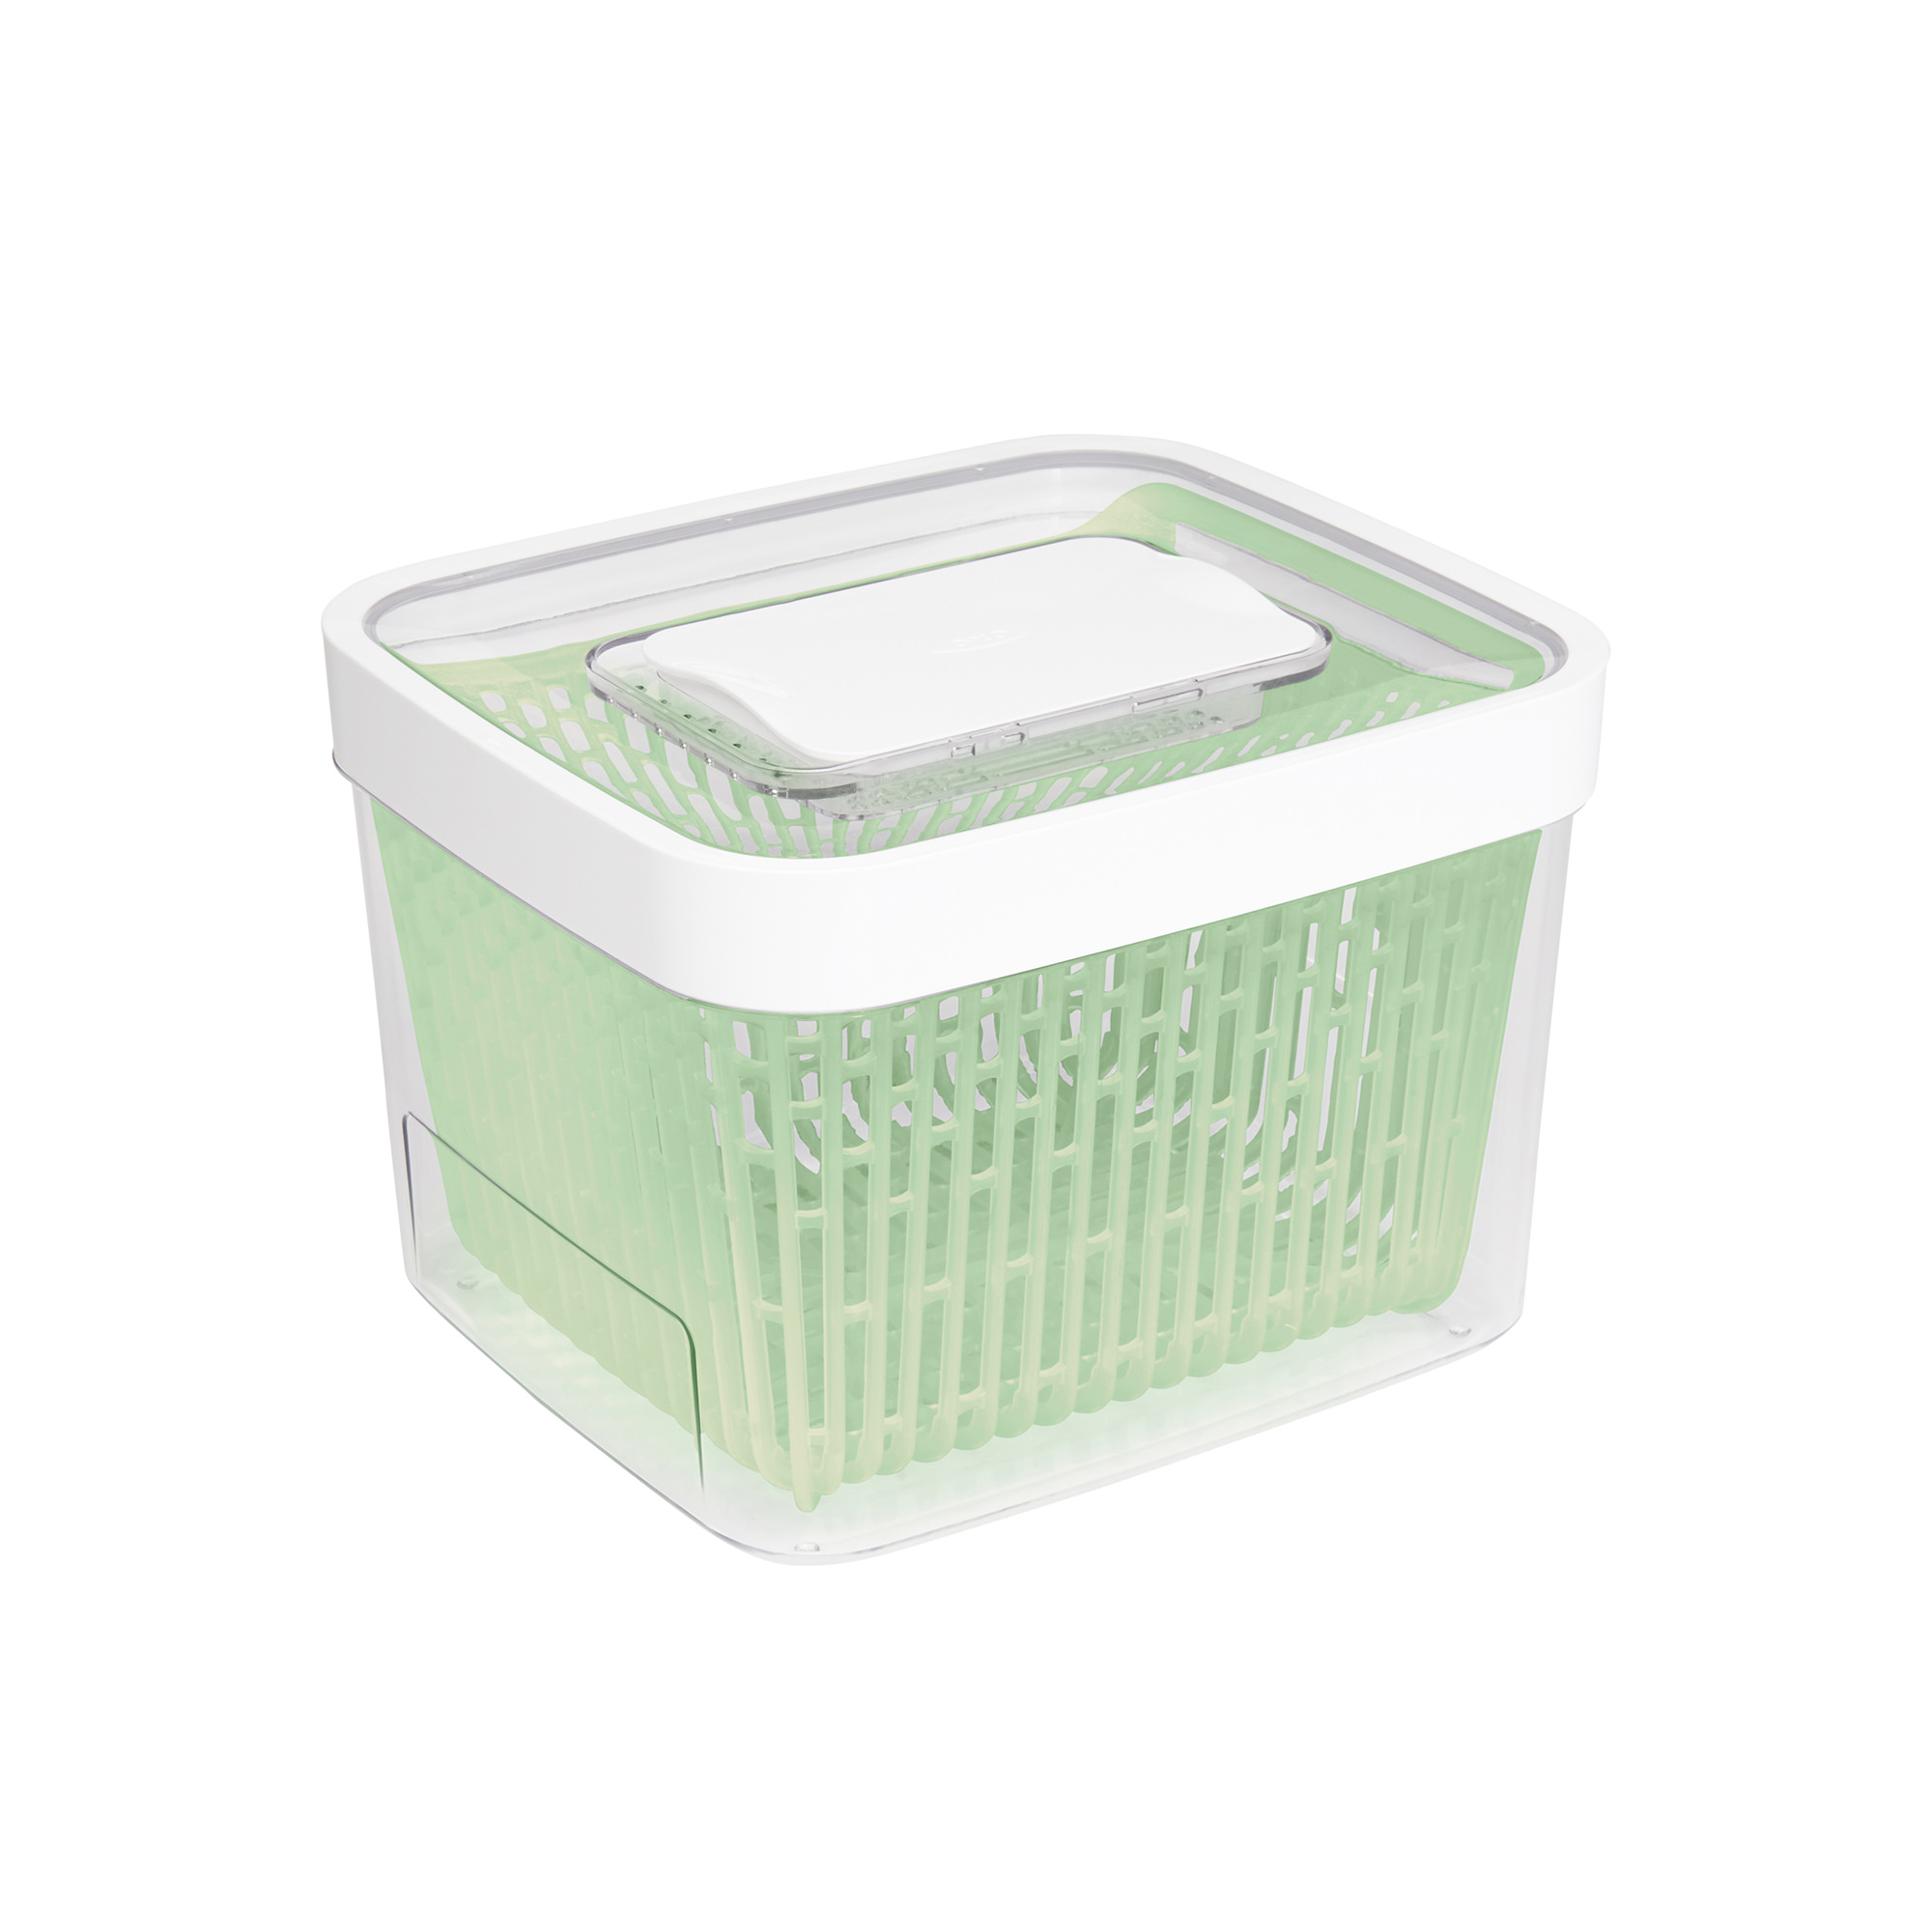 Oxo Good Grips GreenSaver Produce Keeper 4L